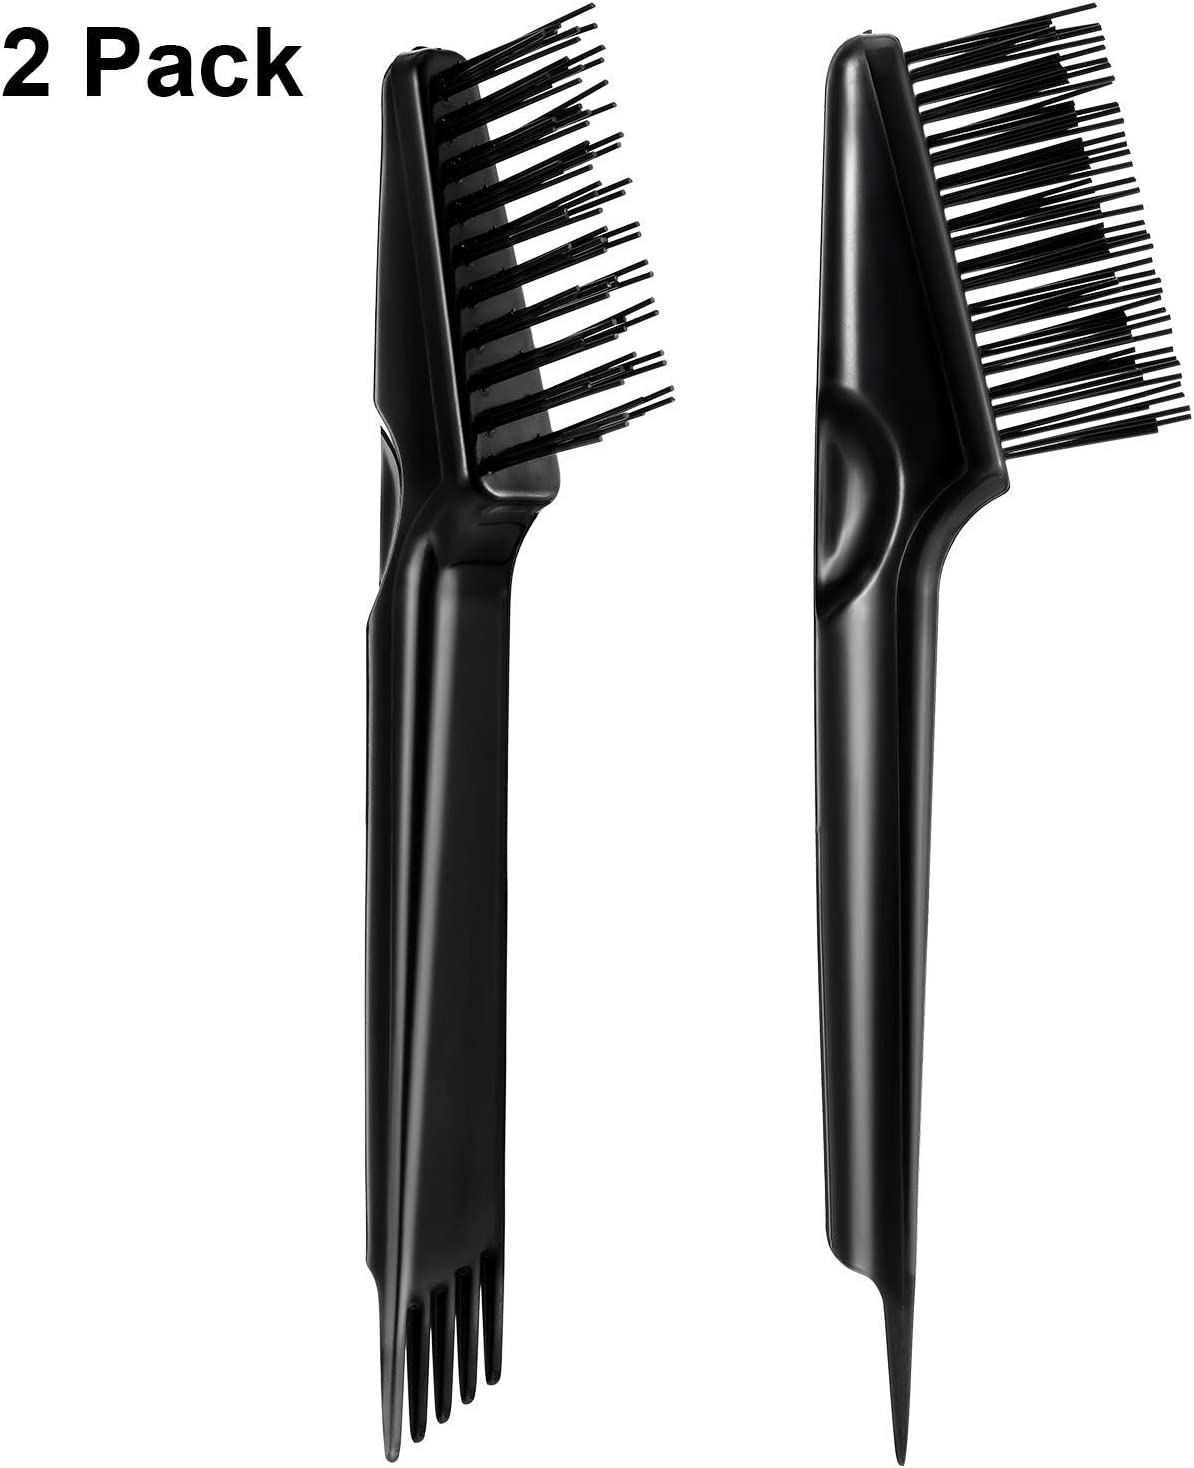 2 Pieces hair brush cleaning tool Hair Brush Cleaner Rake for Removing Dirt Home and Salon Use, Black [並行輸入品]